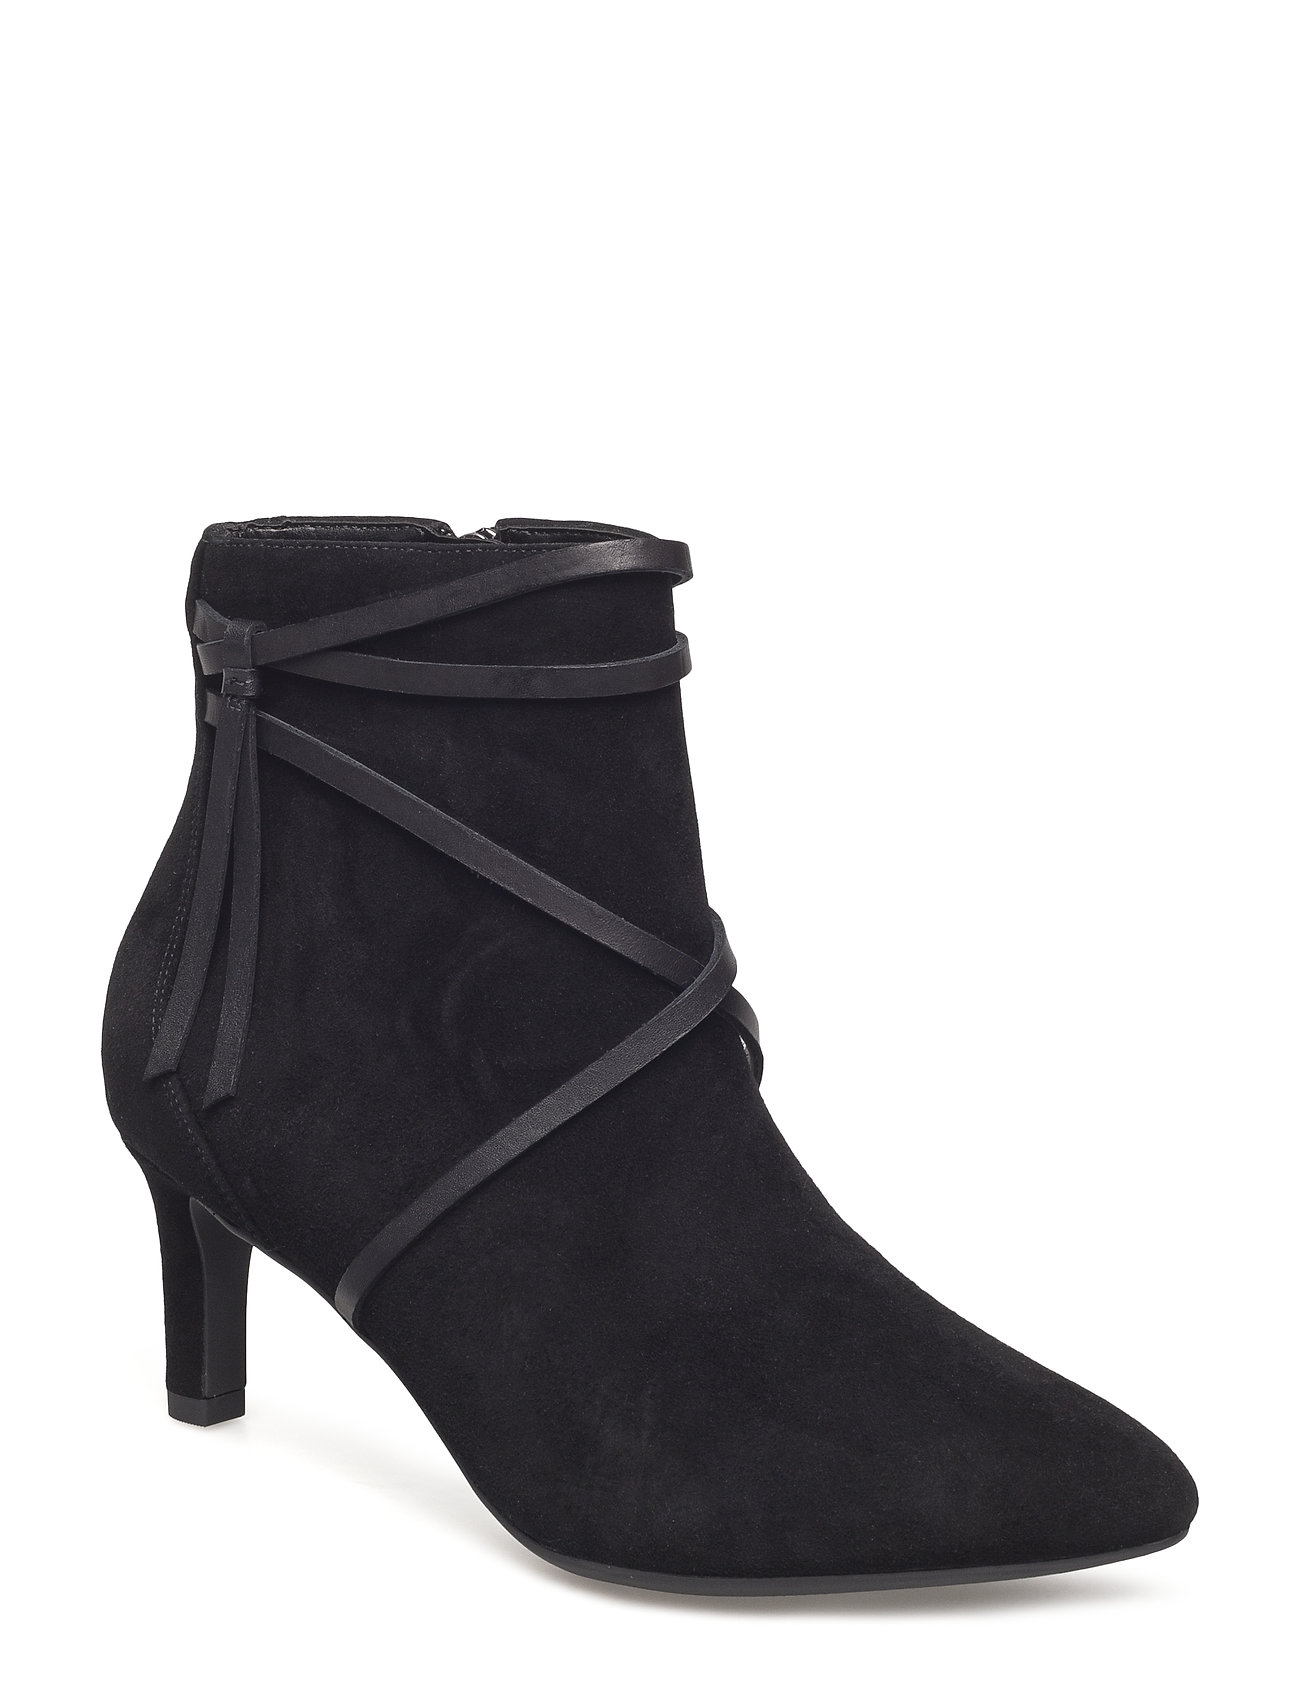 CLARKS Calla Aster Shoes Boots Ankle Boots Ankle Boots With Heel Schwarz CLARKS